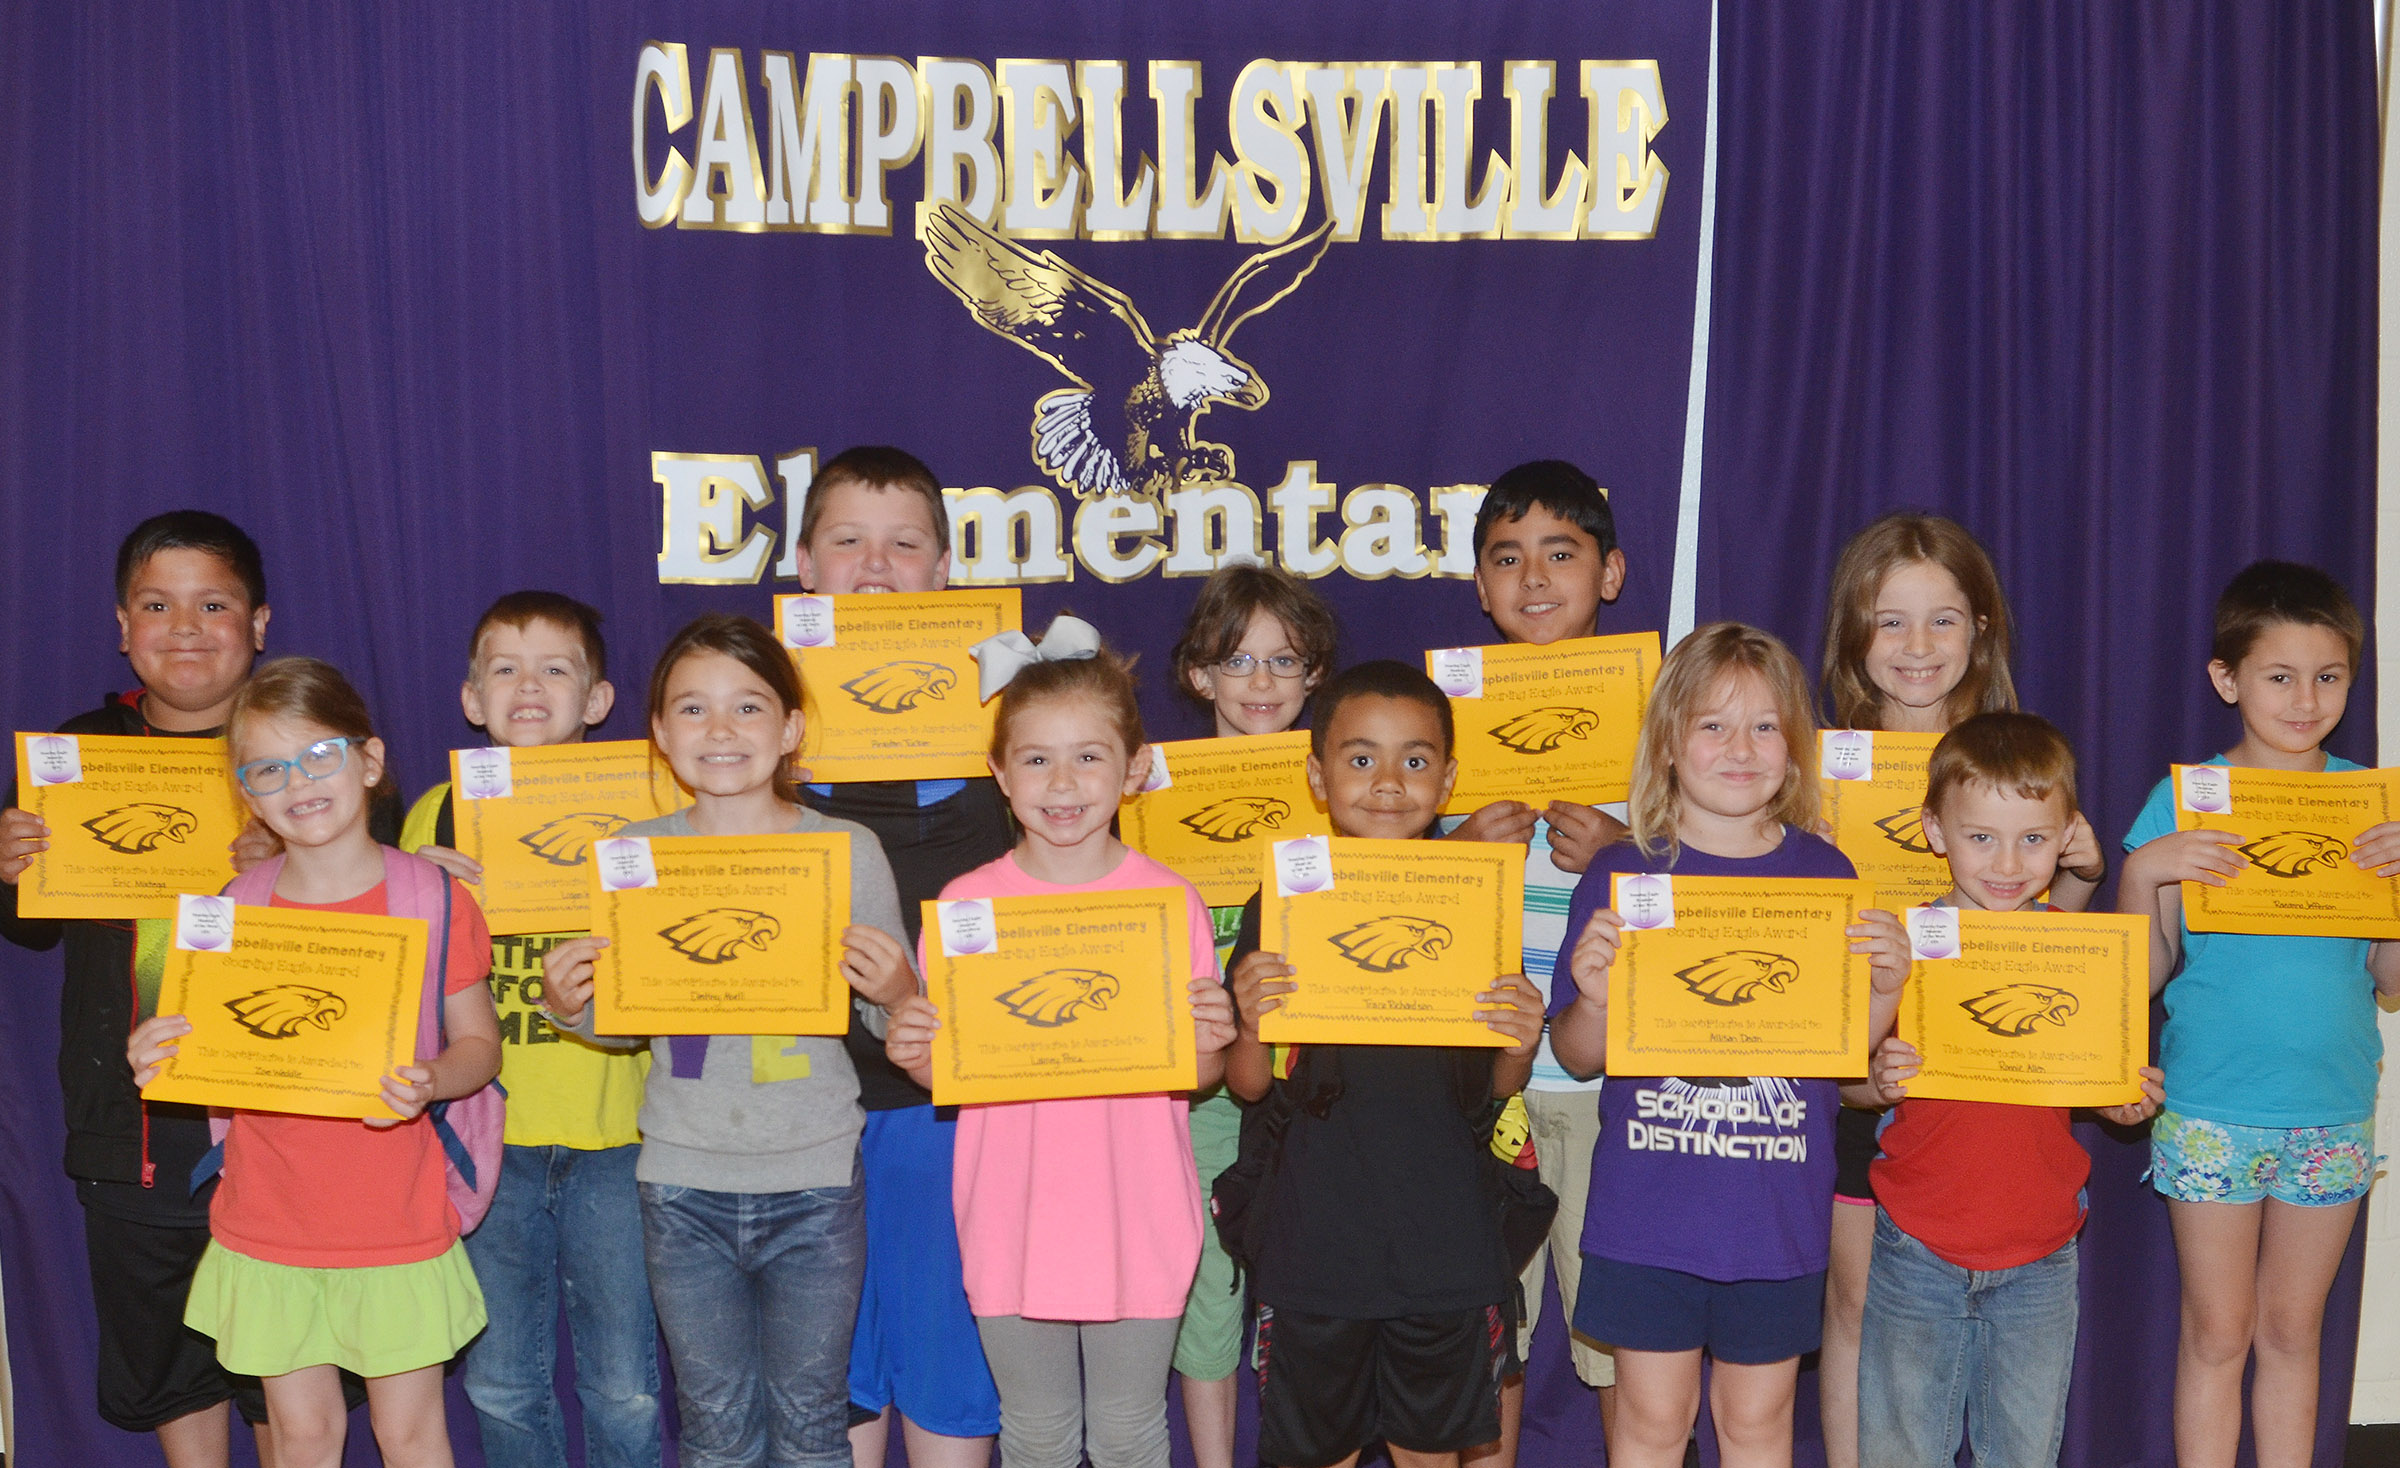 From left, front, are kindergartener Zoe Weddle, third-grader Destiny Abell, first-graders Lainey Price, Trace Richardson and Allison Dean and kindergartener Ronnie Allen. Back, first-graders Eric Mixtega and Logan Weddle, second-graders Braxton Tucker and Lily Wise and third-graders Cody Tamez, Reagan Hayes and Raeanna Jefferson. Not pictured are kindergartener Isabella Anderson and second-grader Trenton Harris.